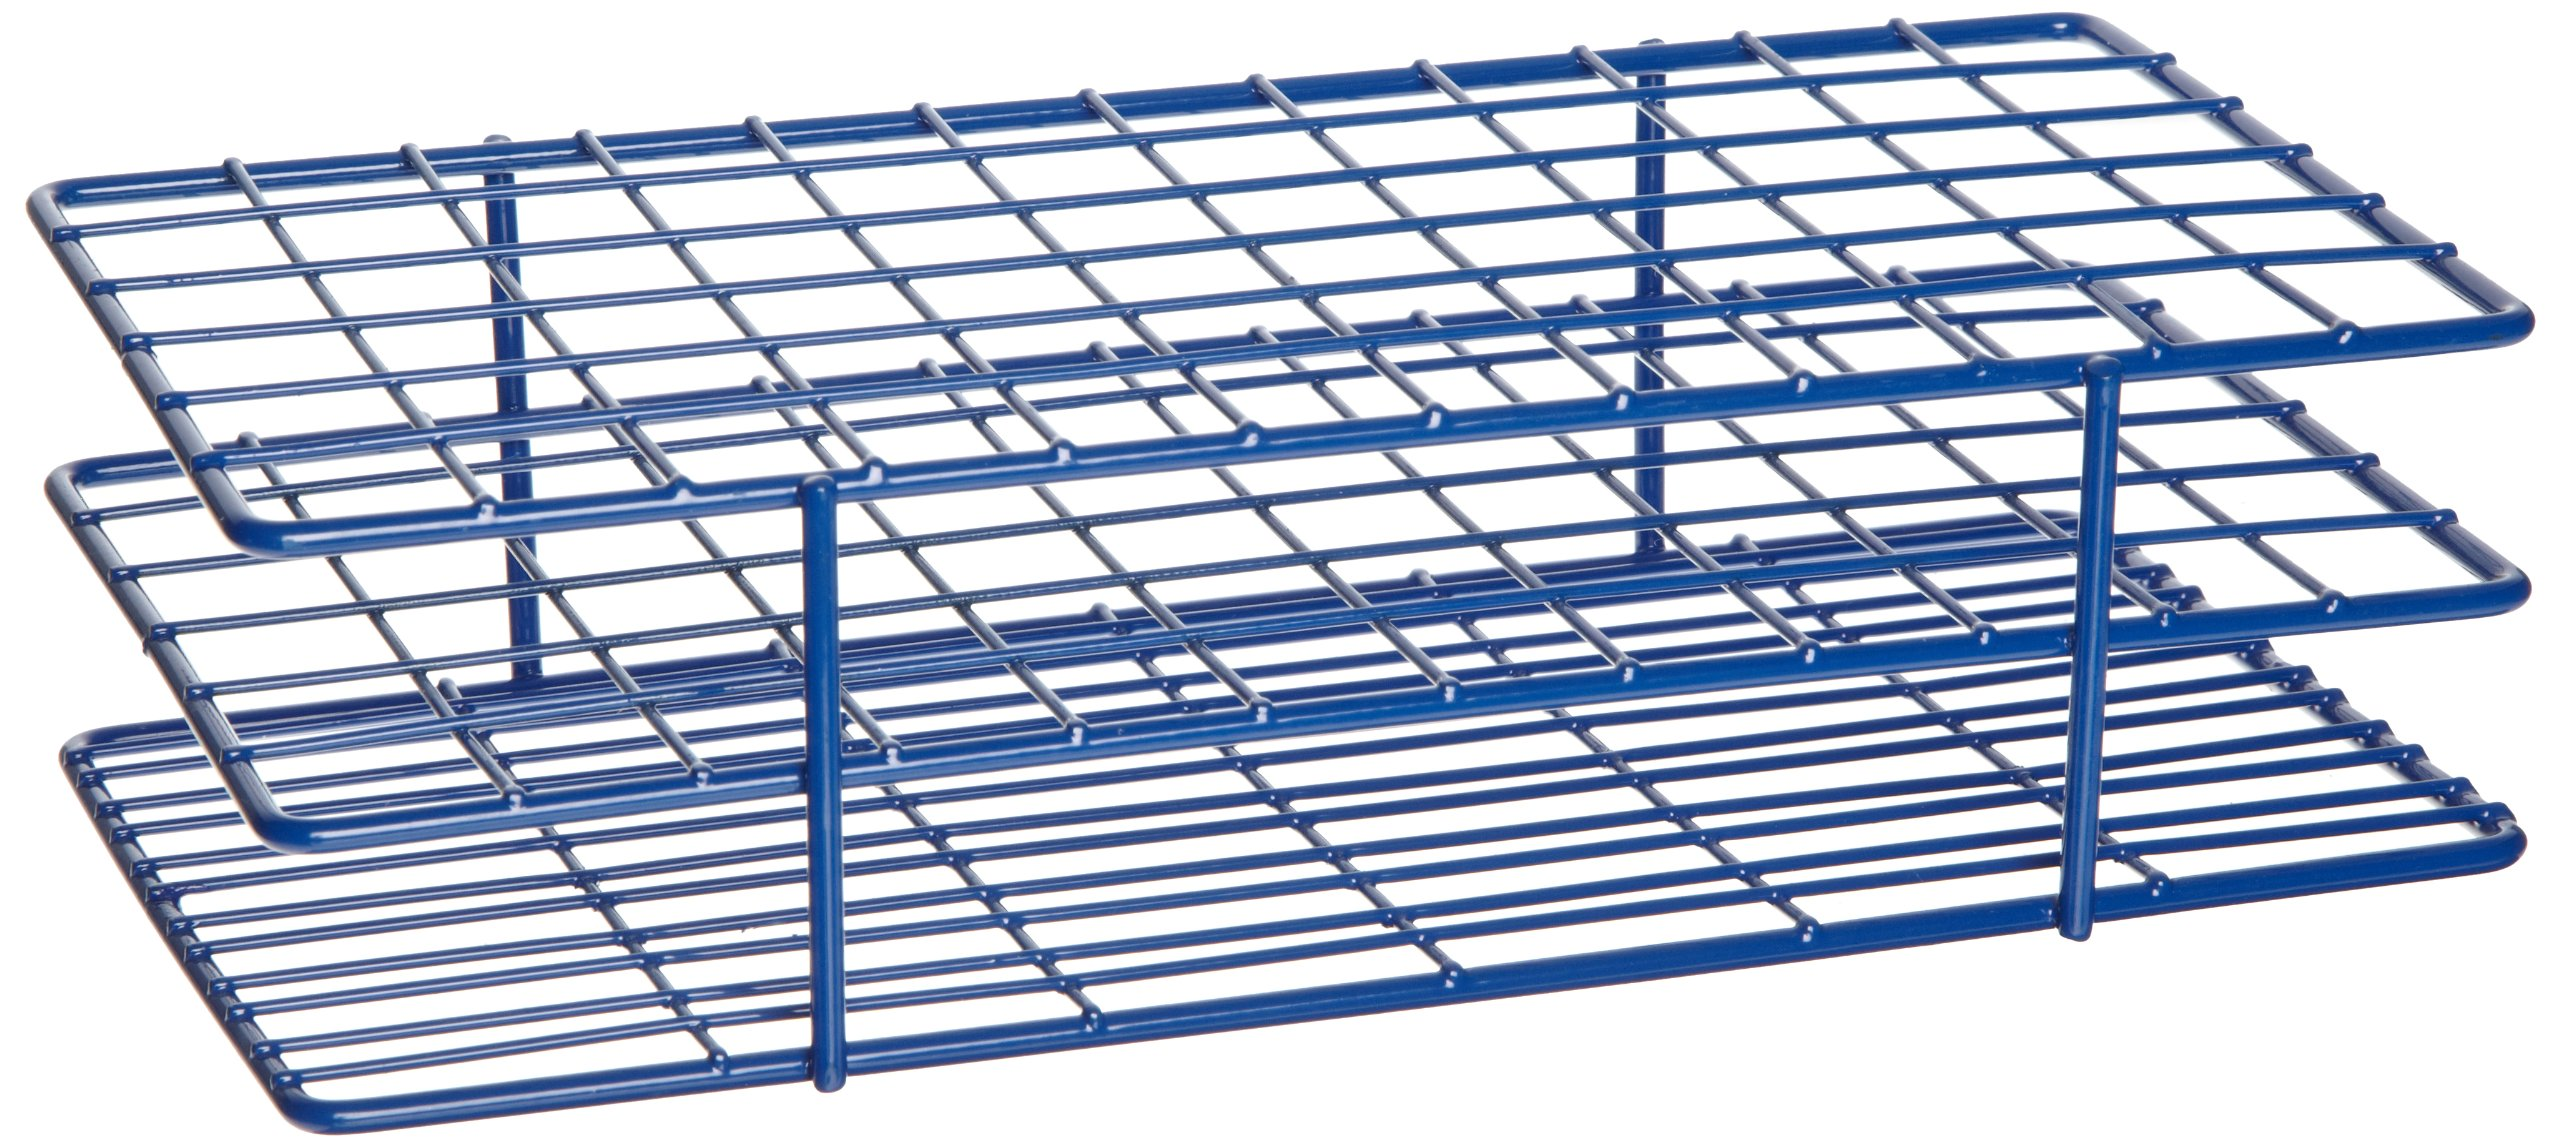 Heathrow Scientific HD23072 Steel Epoxy-Coated 72-Well Wire Rack for 16mm Tubes, Blue by Heathrow Scientific